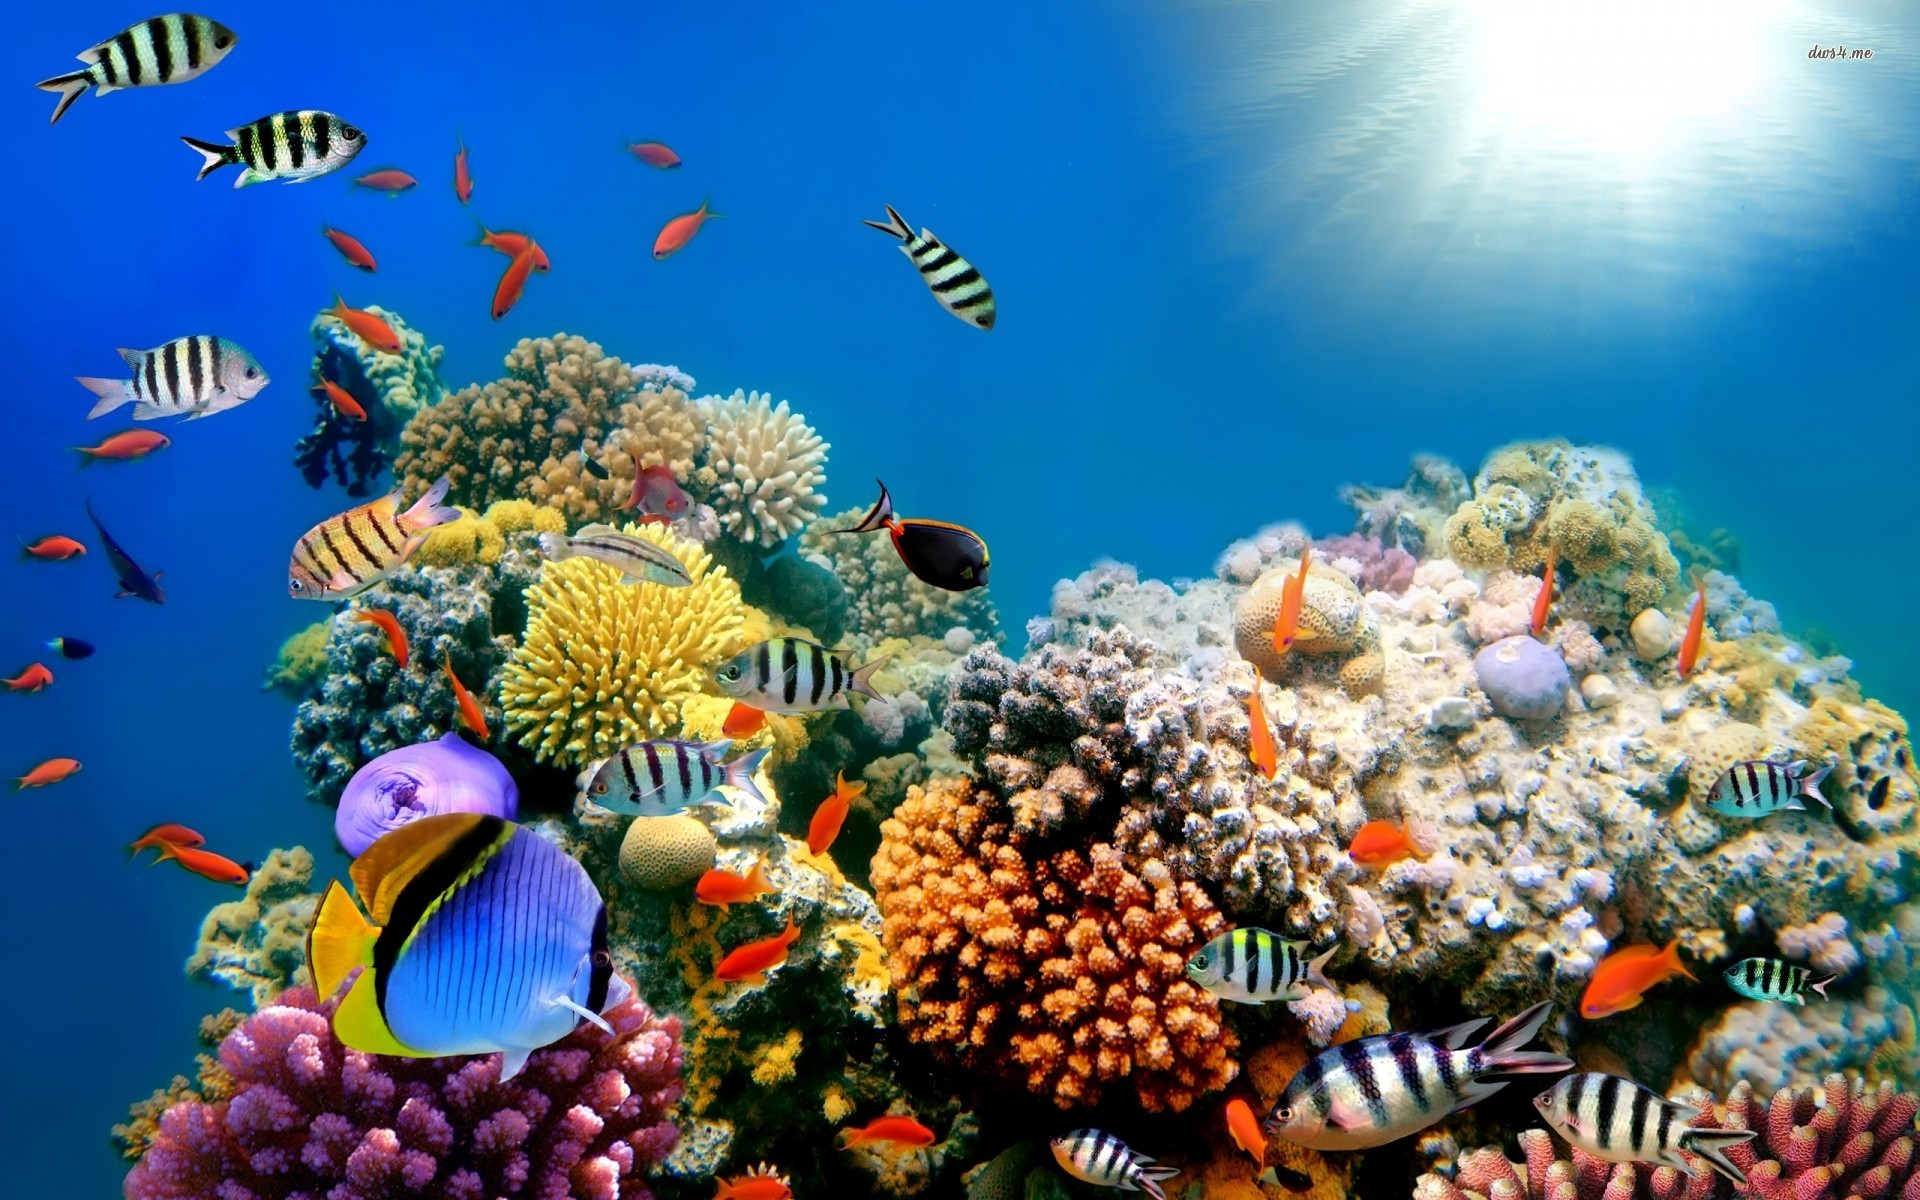 Coral Reef Live Wallpapers free app download for Android 1920x1200